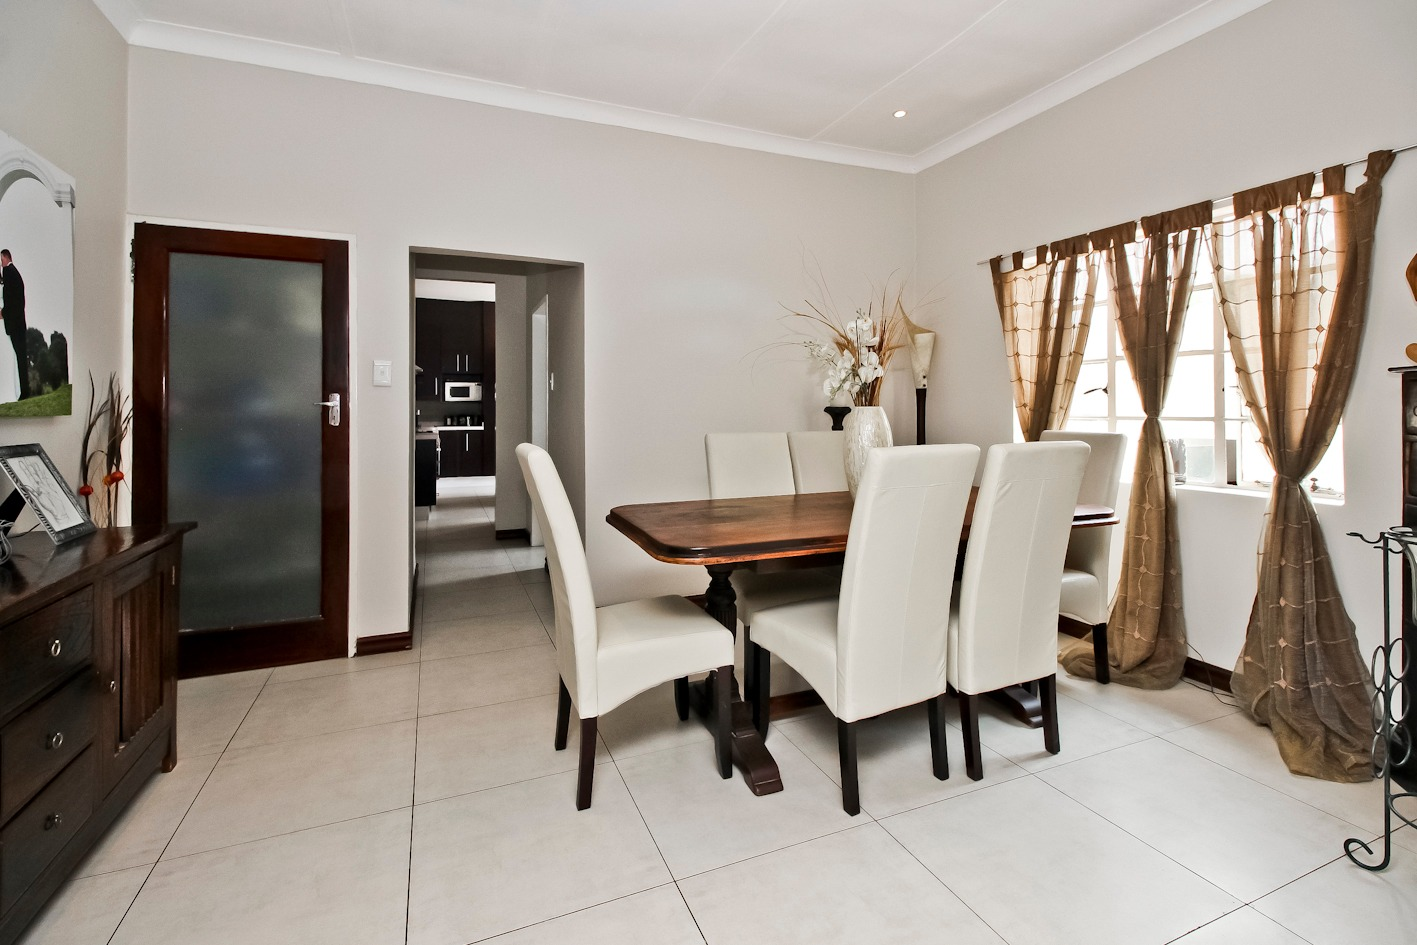 3 Bedroom House For Sale in Thornhill Estate